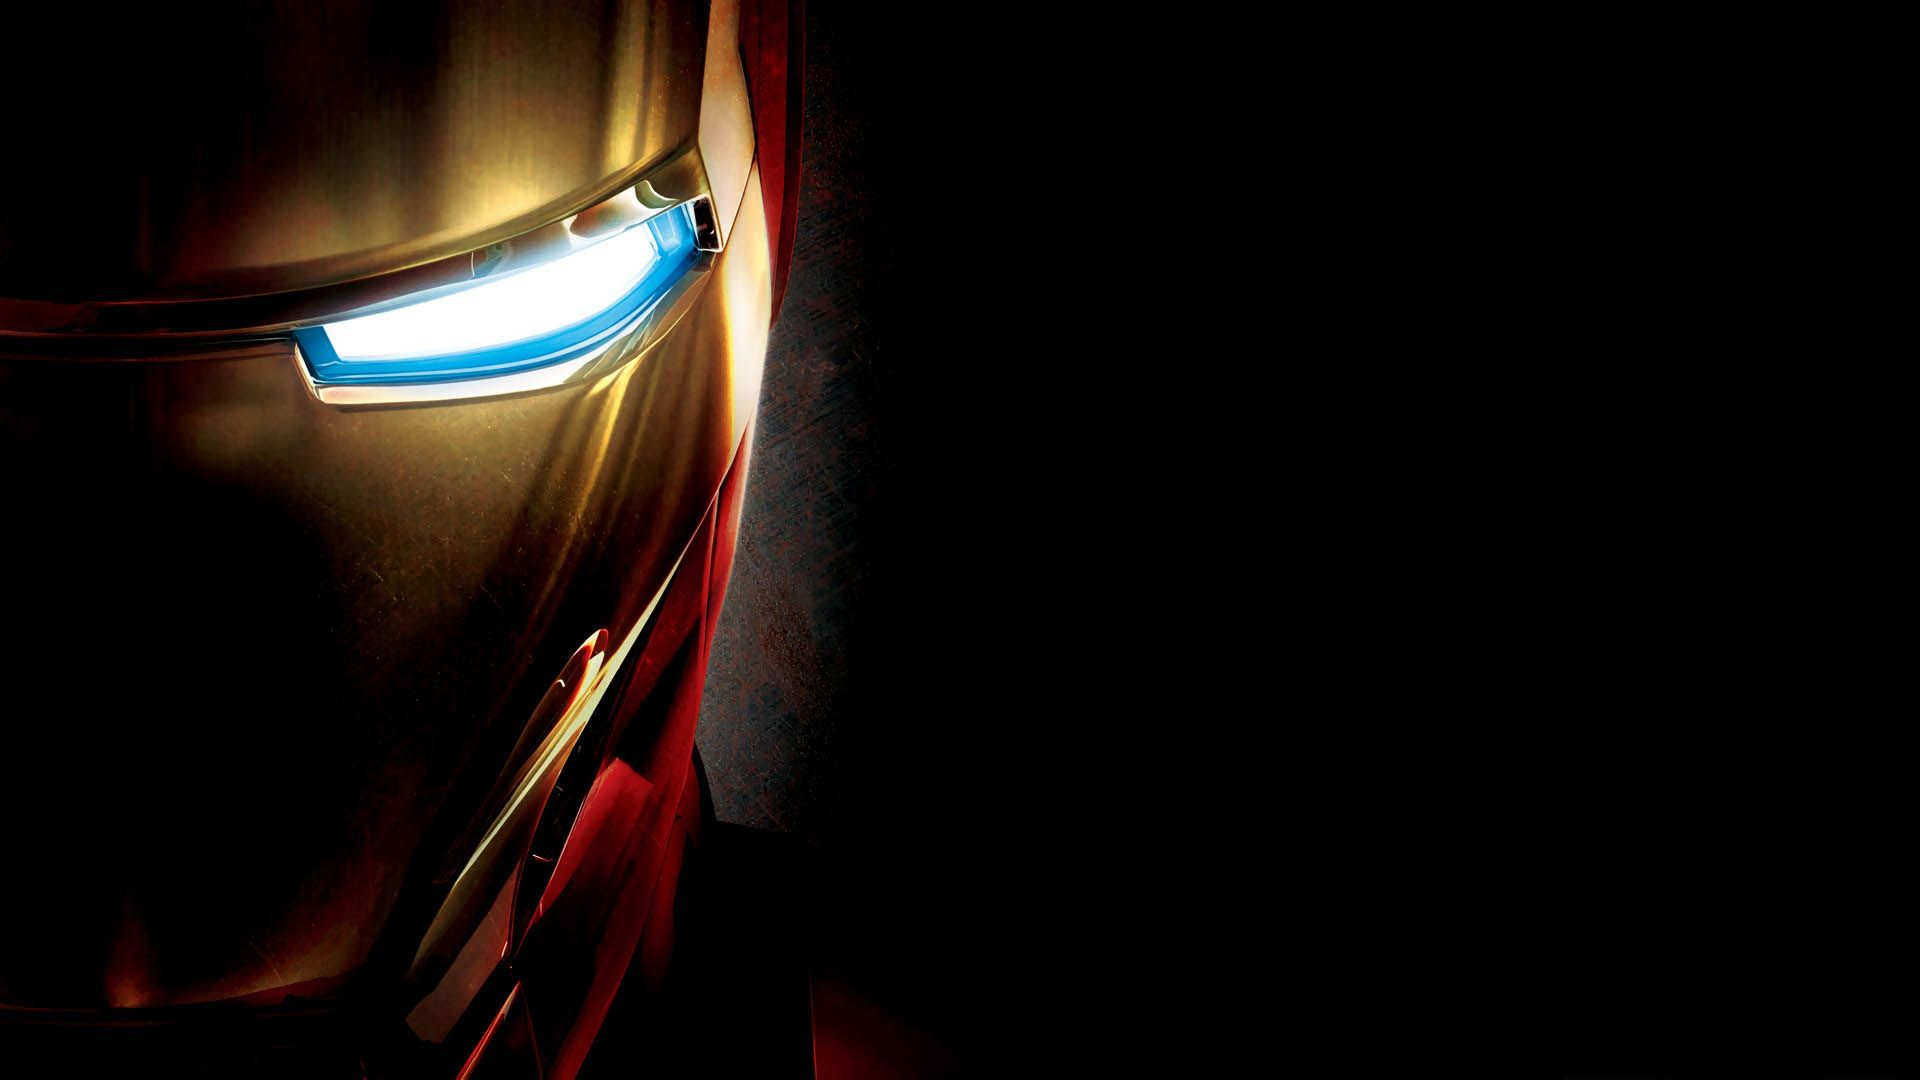 Collection of Ironman Wallpaper Hd on HDWallpapers 1920x1080